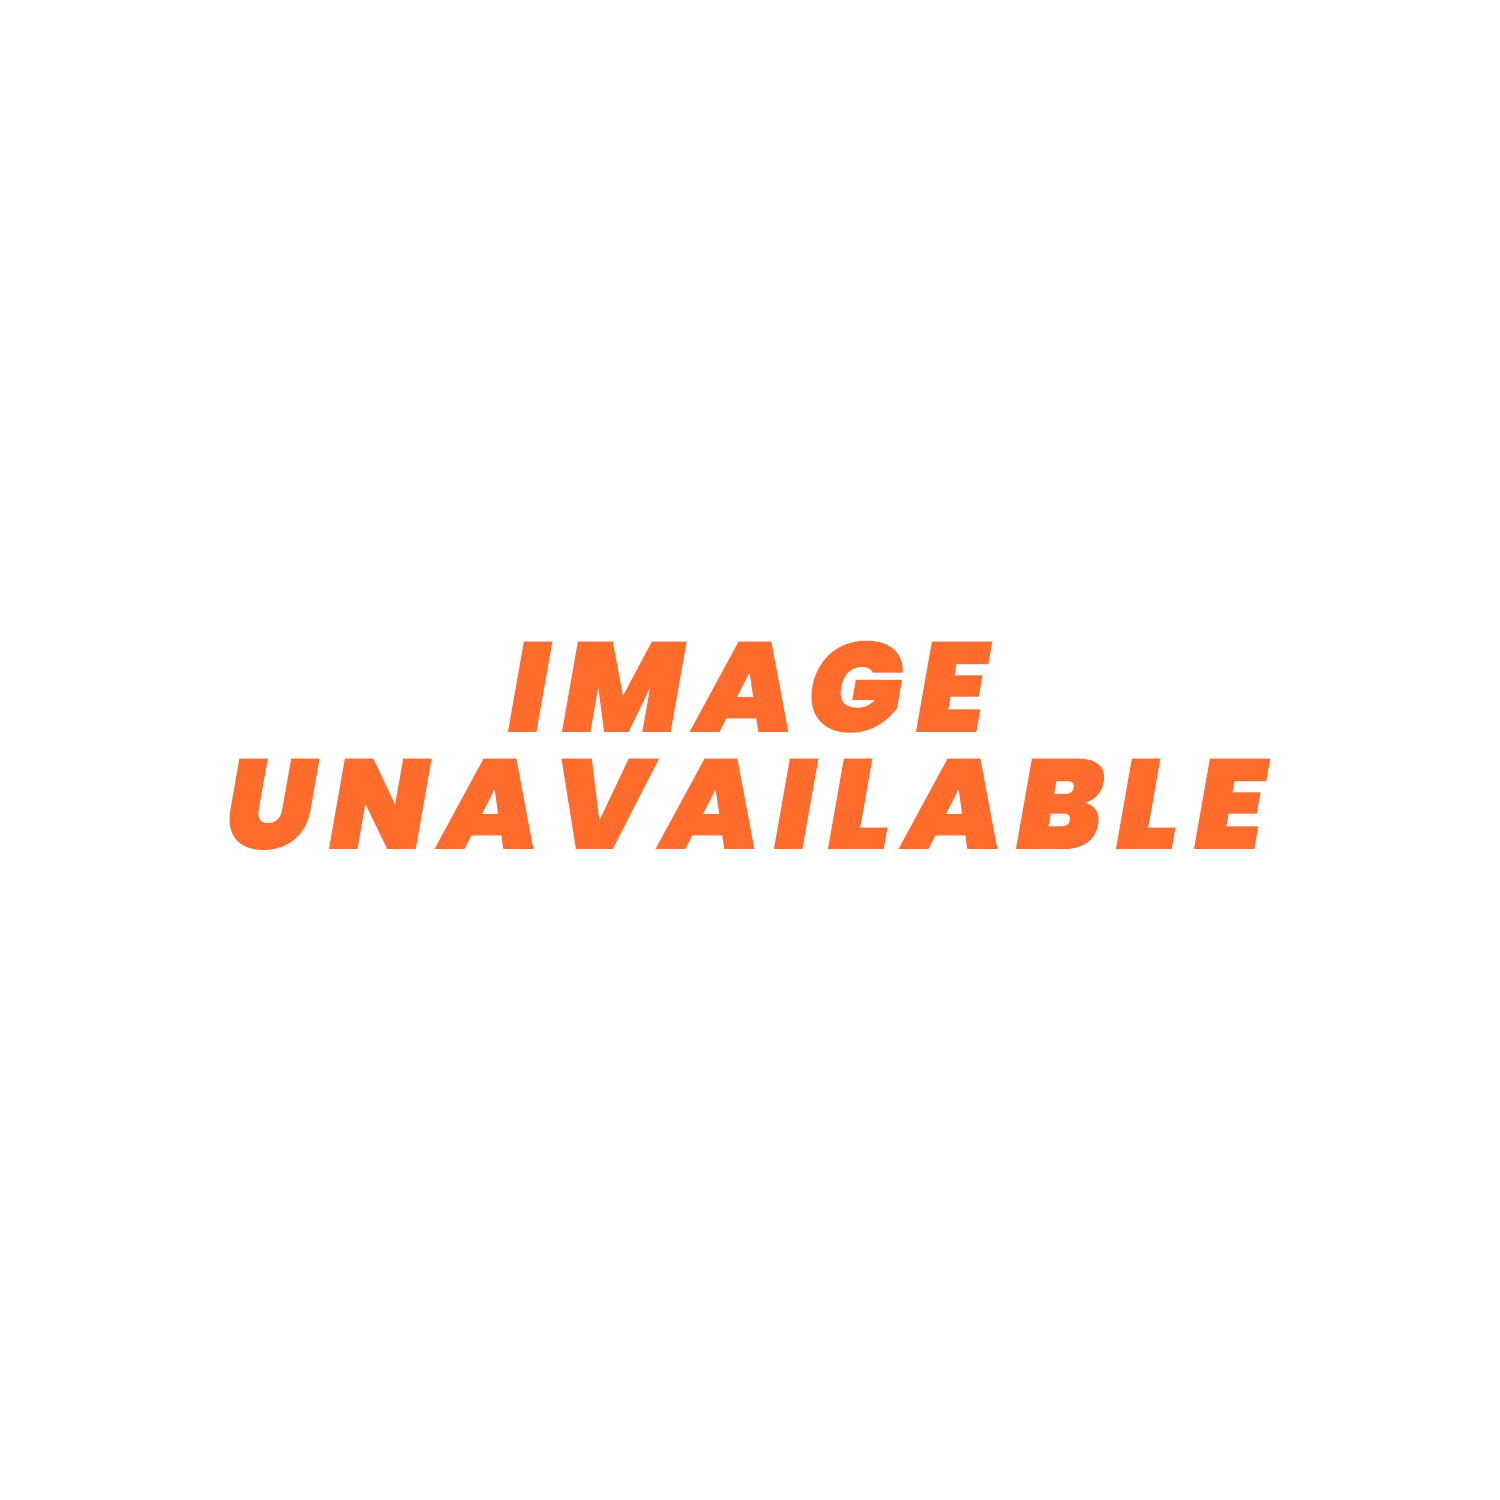 "SPAL Radiator Fan - 11.0"" (280mm) Pull VA09-AP8/C-54A 779cfm"